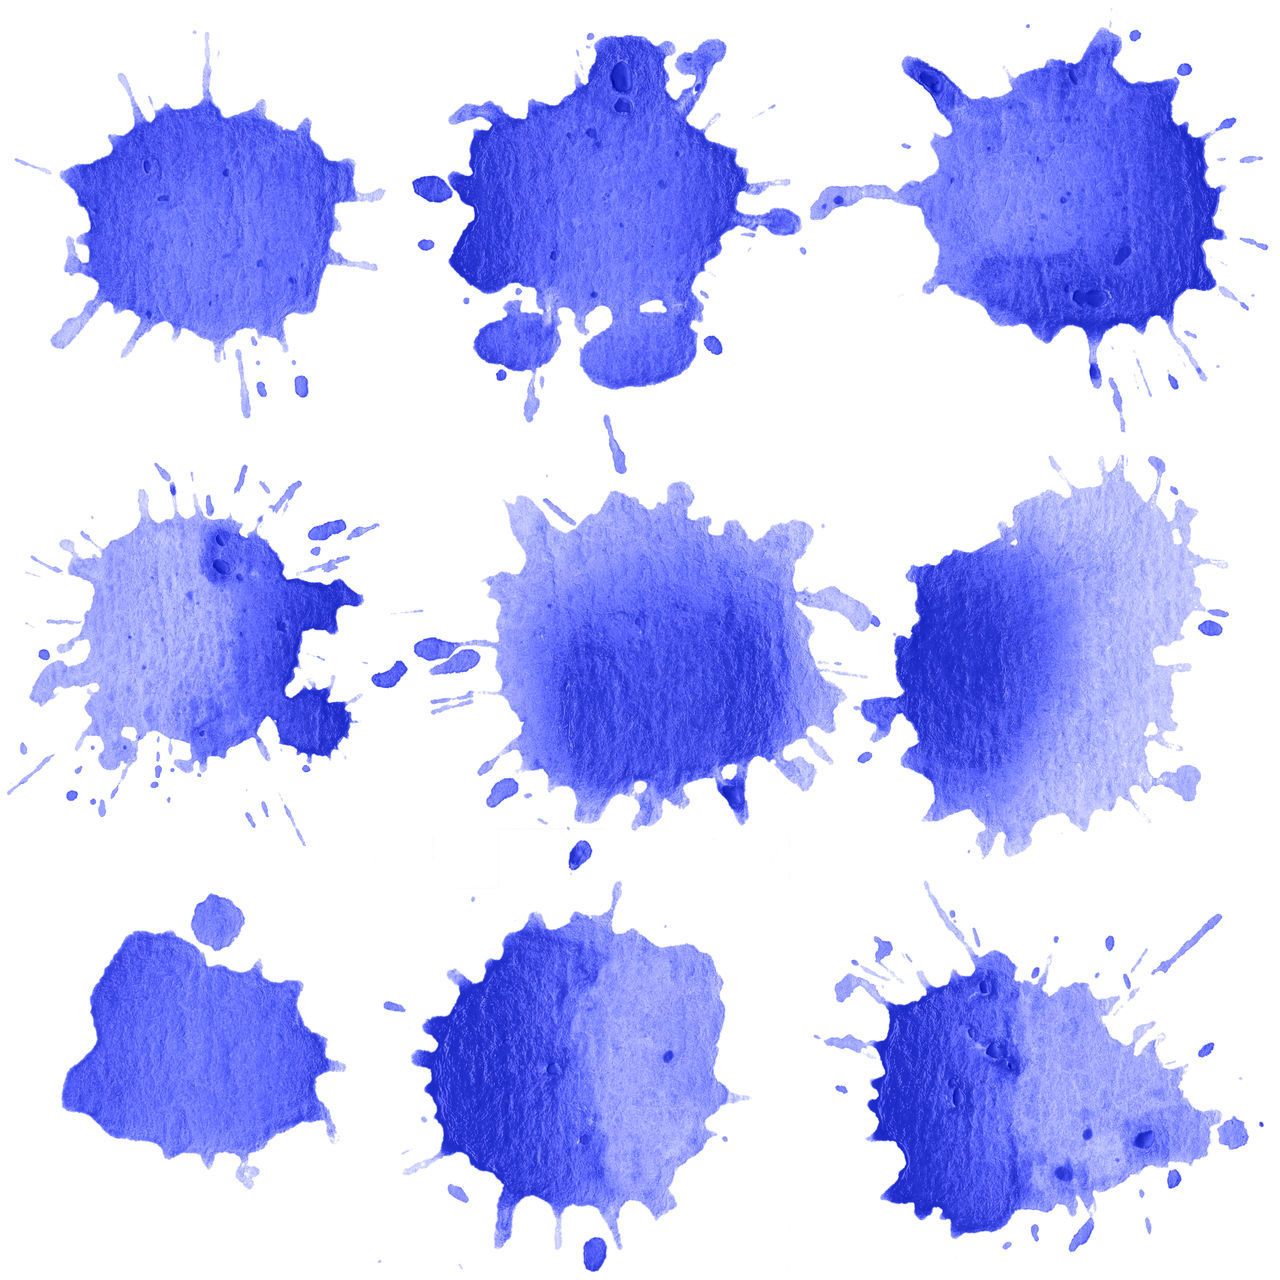 Beautiful stock photos of graphic art, ink, abstract, splattered, painted image